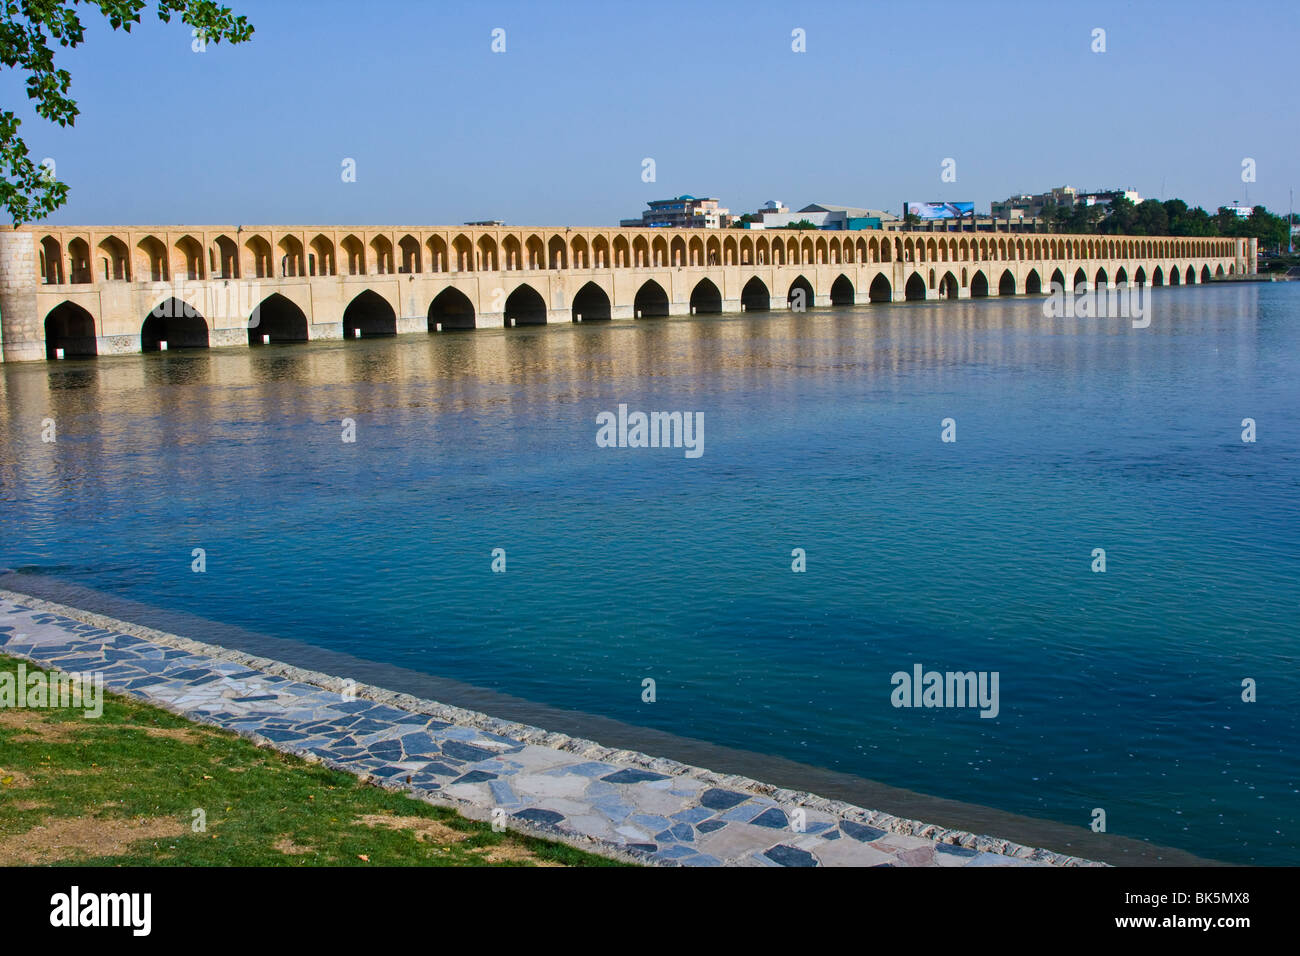 Si-o-se Bridge or Bridge of 33 Arches in Esfahan Iran - Stock Image